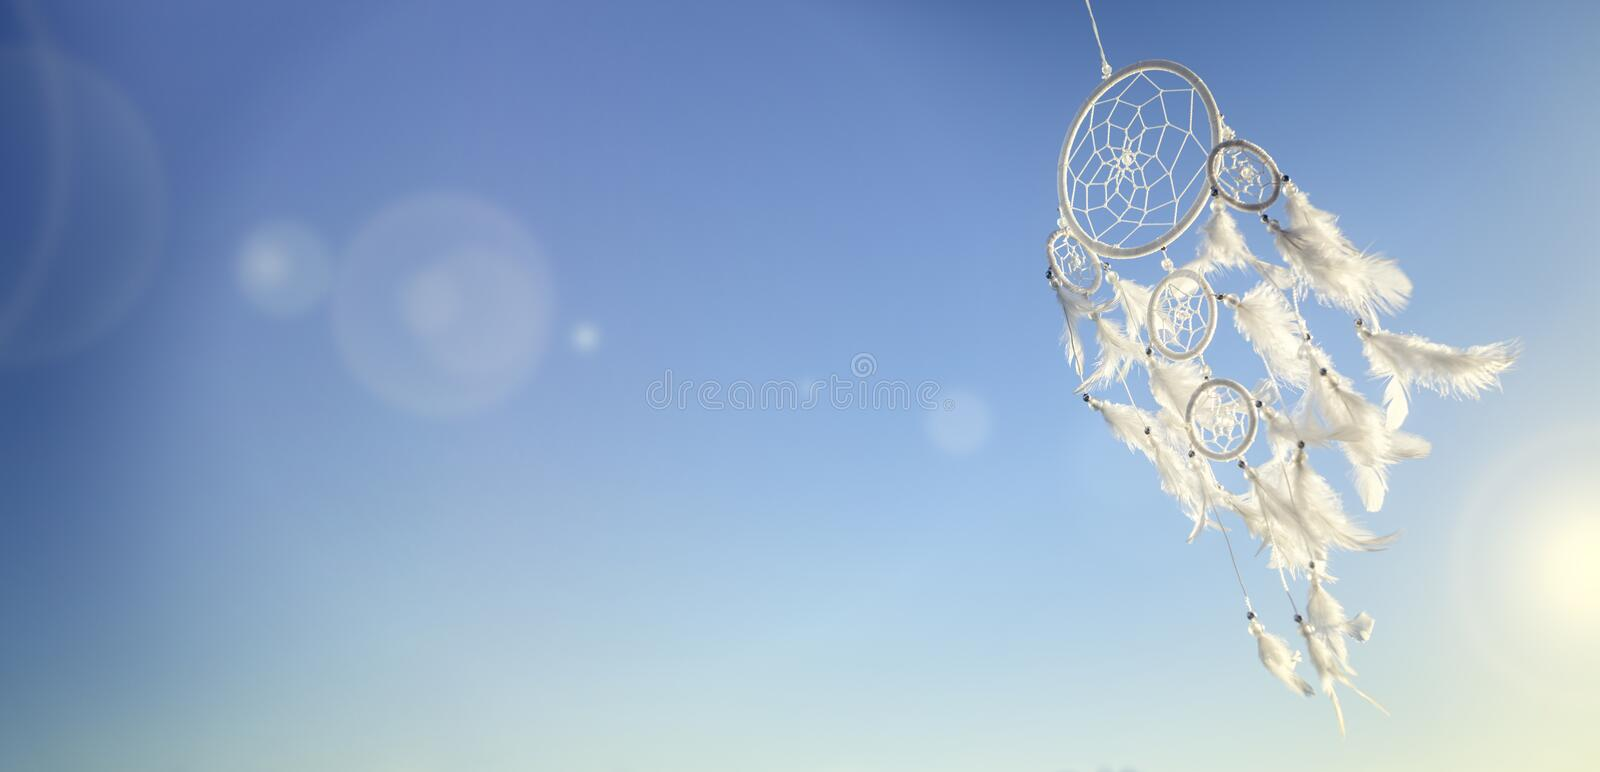 Dream catcher on blue sky background with copy space royalty free stock image